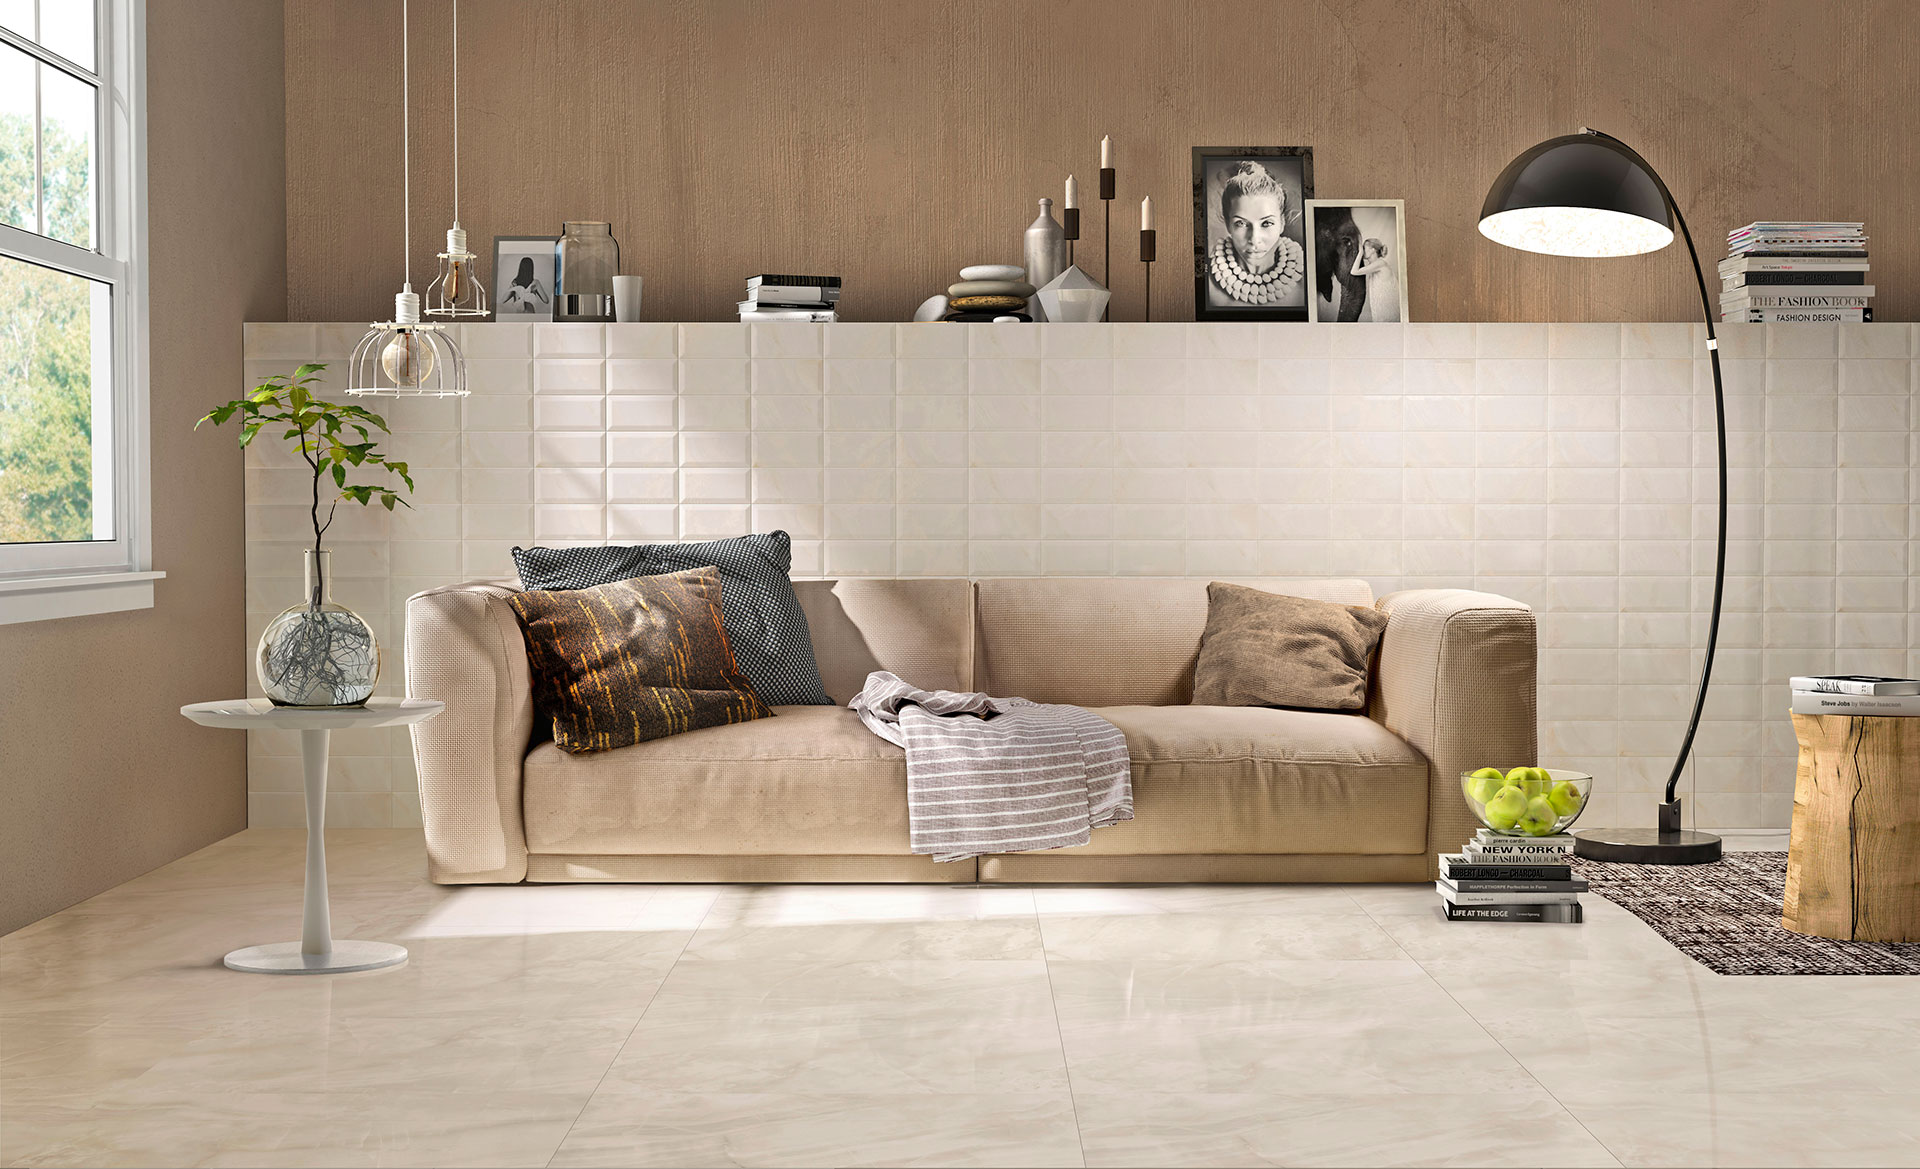 Iris Ceramica Marmi 3 0 for today's floors and walls